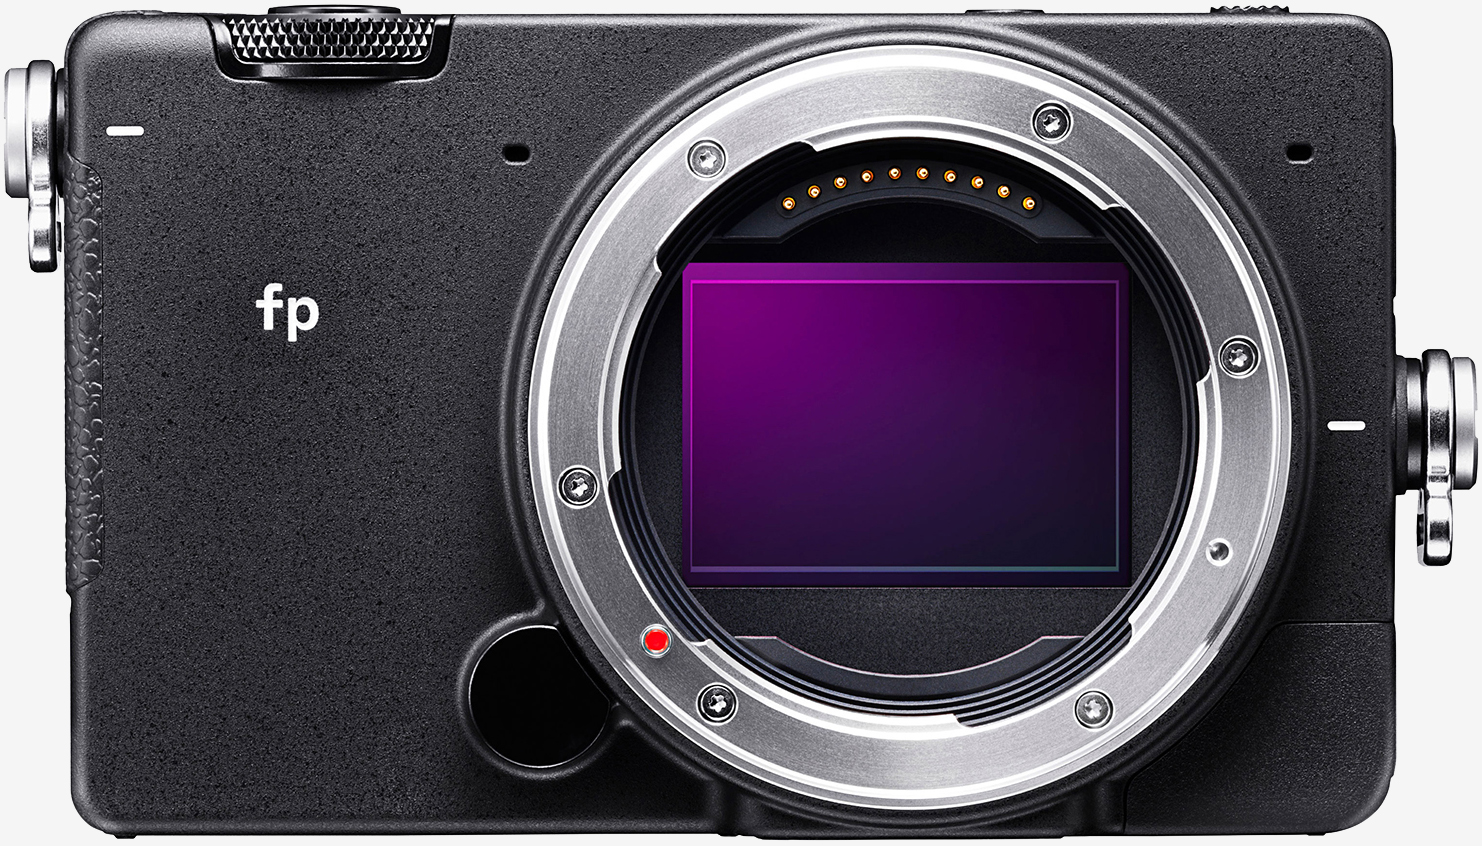 Sigma's new fp is the world's smallest full-frame mirrorless camera